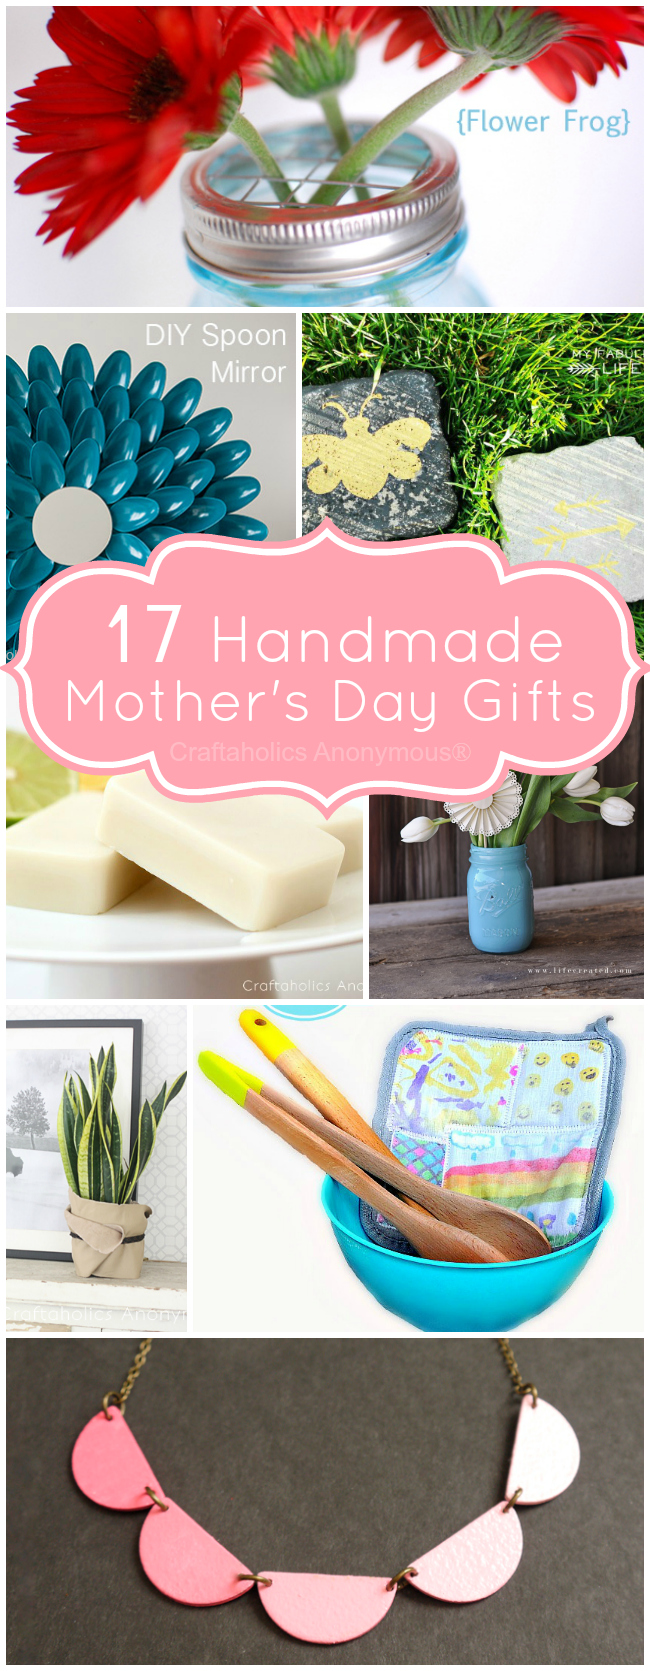 Craftaholics anonymous 17 handmade mother 39 s day gifts for Craft gifts for mom